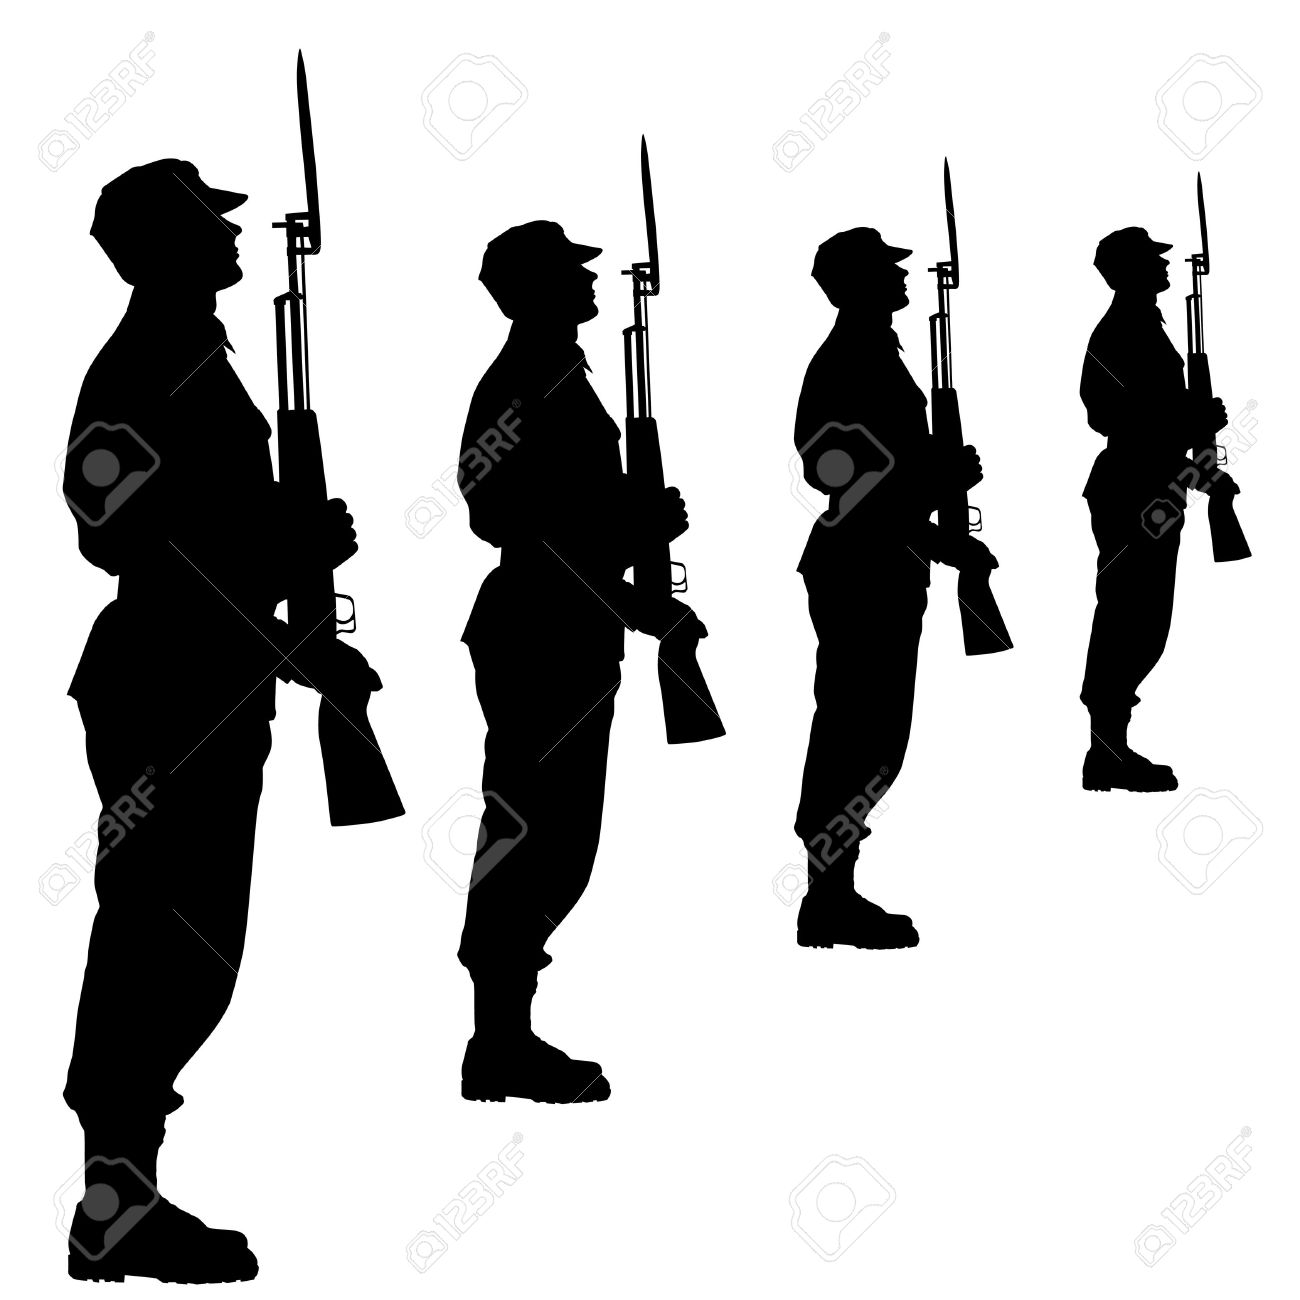 Silhouette Soldiers During A Military Parade. Illustration.